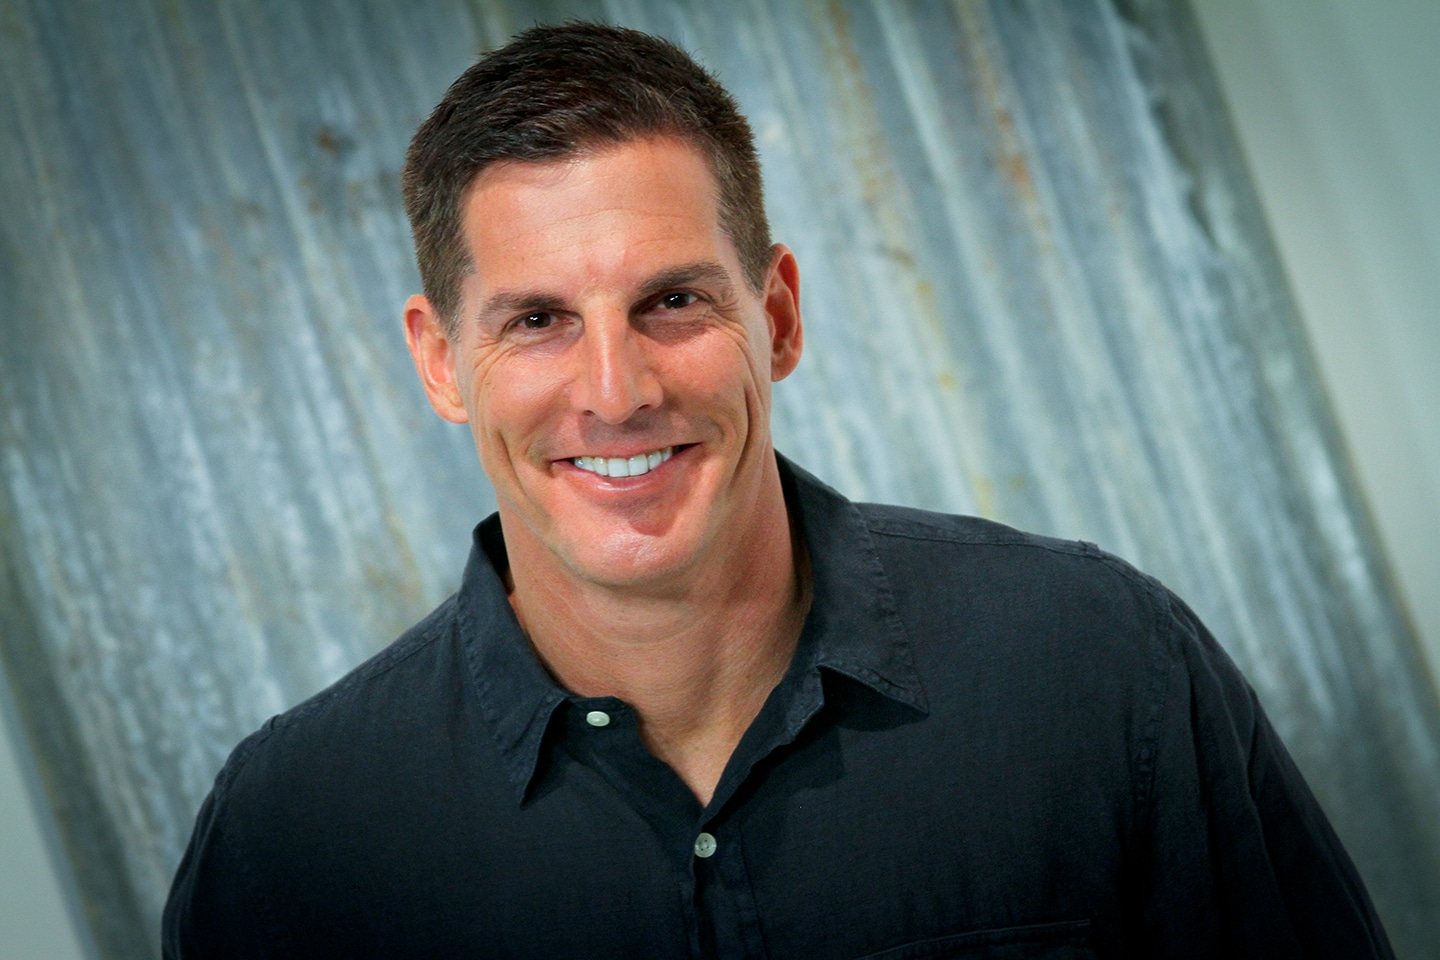 CNLP 052: How Craig Groeschel Stays Healthy, Relevant and Passionate in Ministry